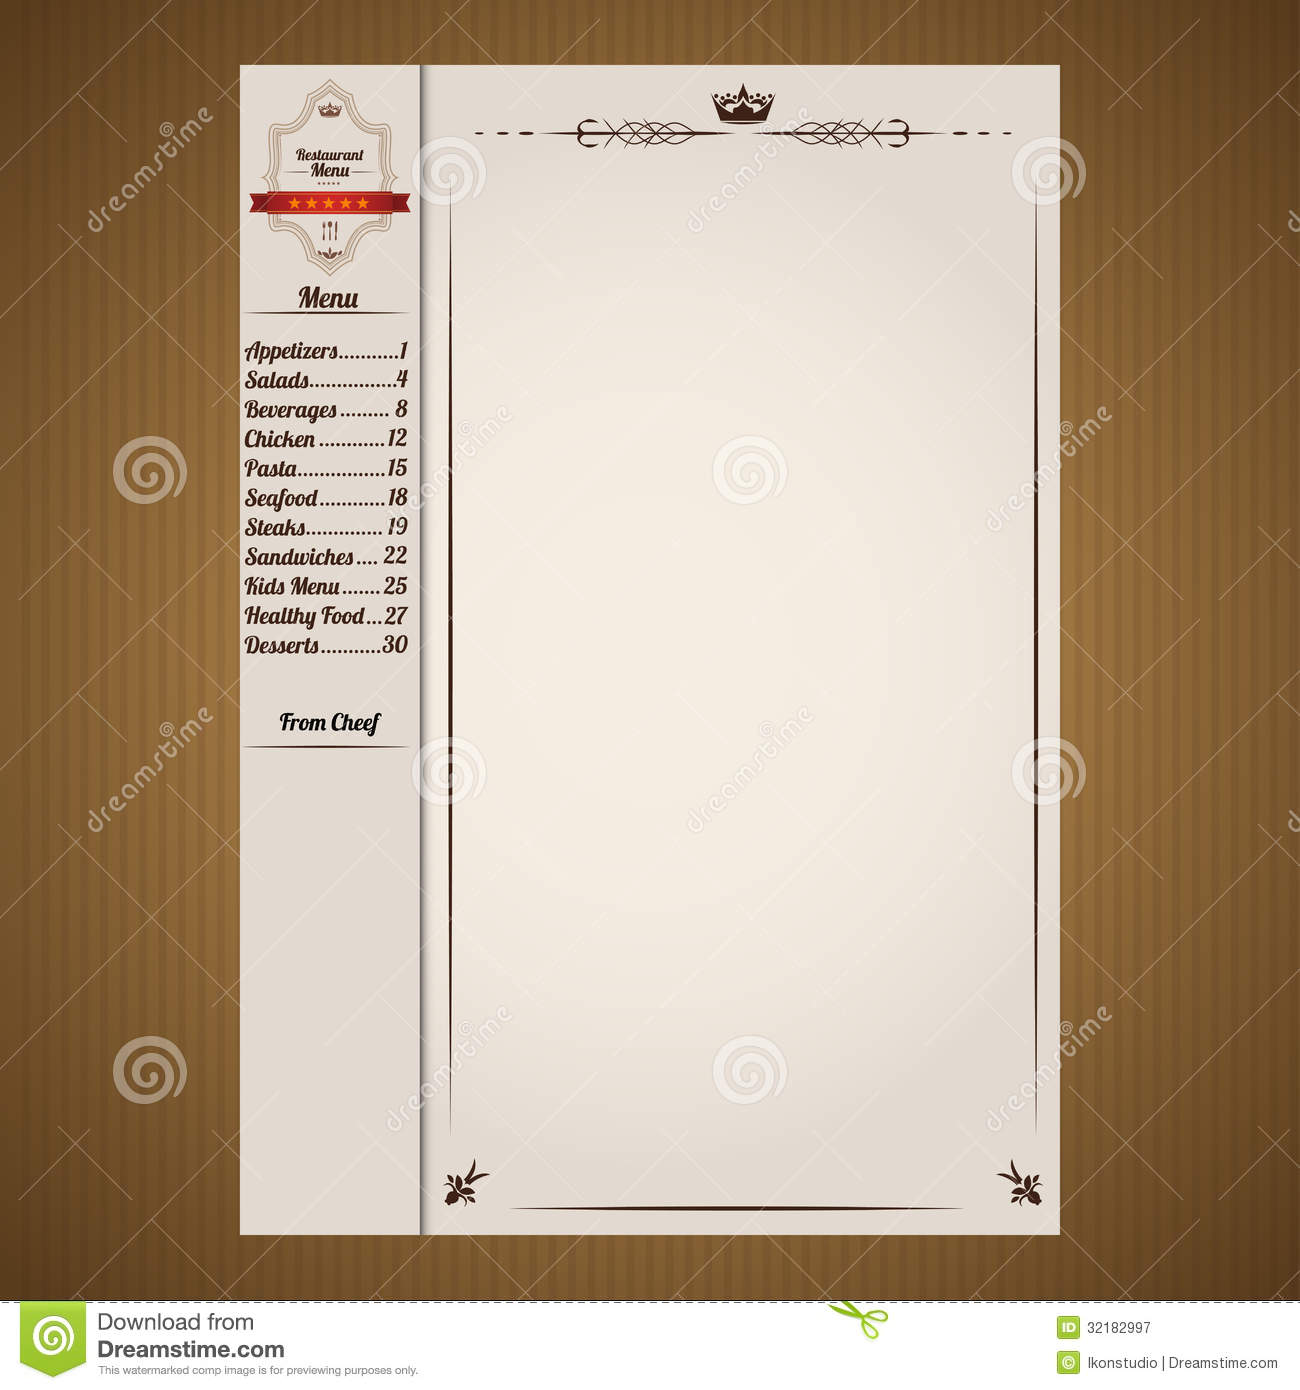 Restaurant Menu Page Template  Free Downloadable Restaurant Menu Templates